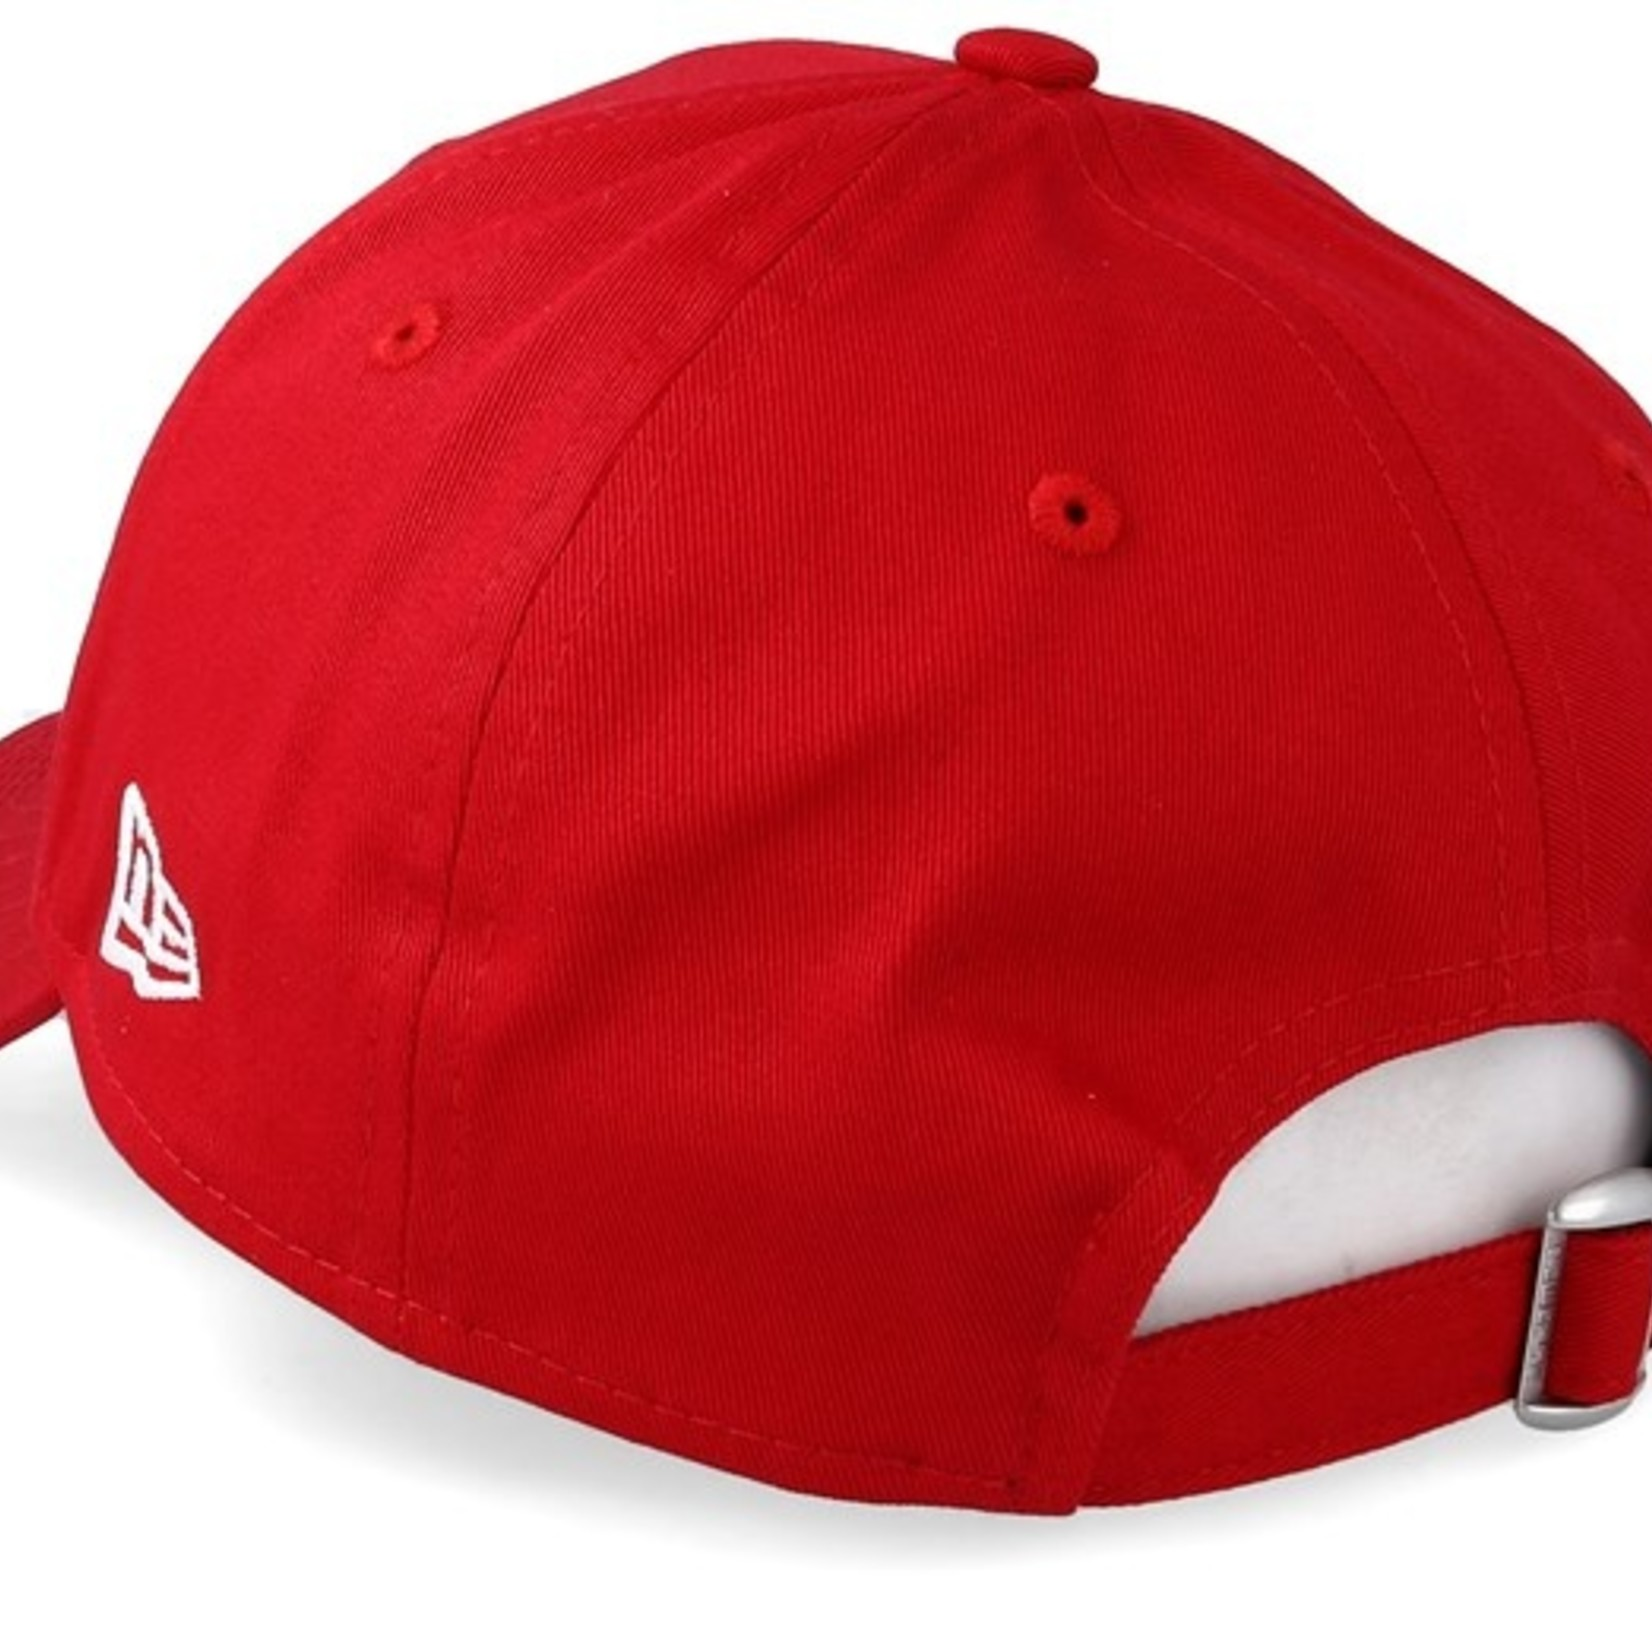 New Era NY 9Forty Red/White adjustable